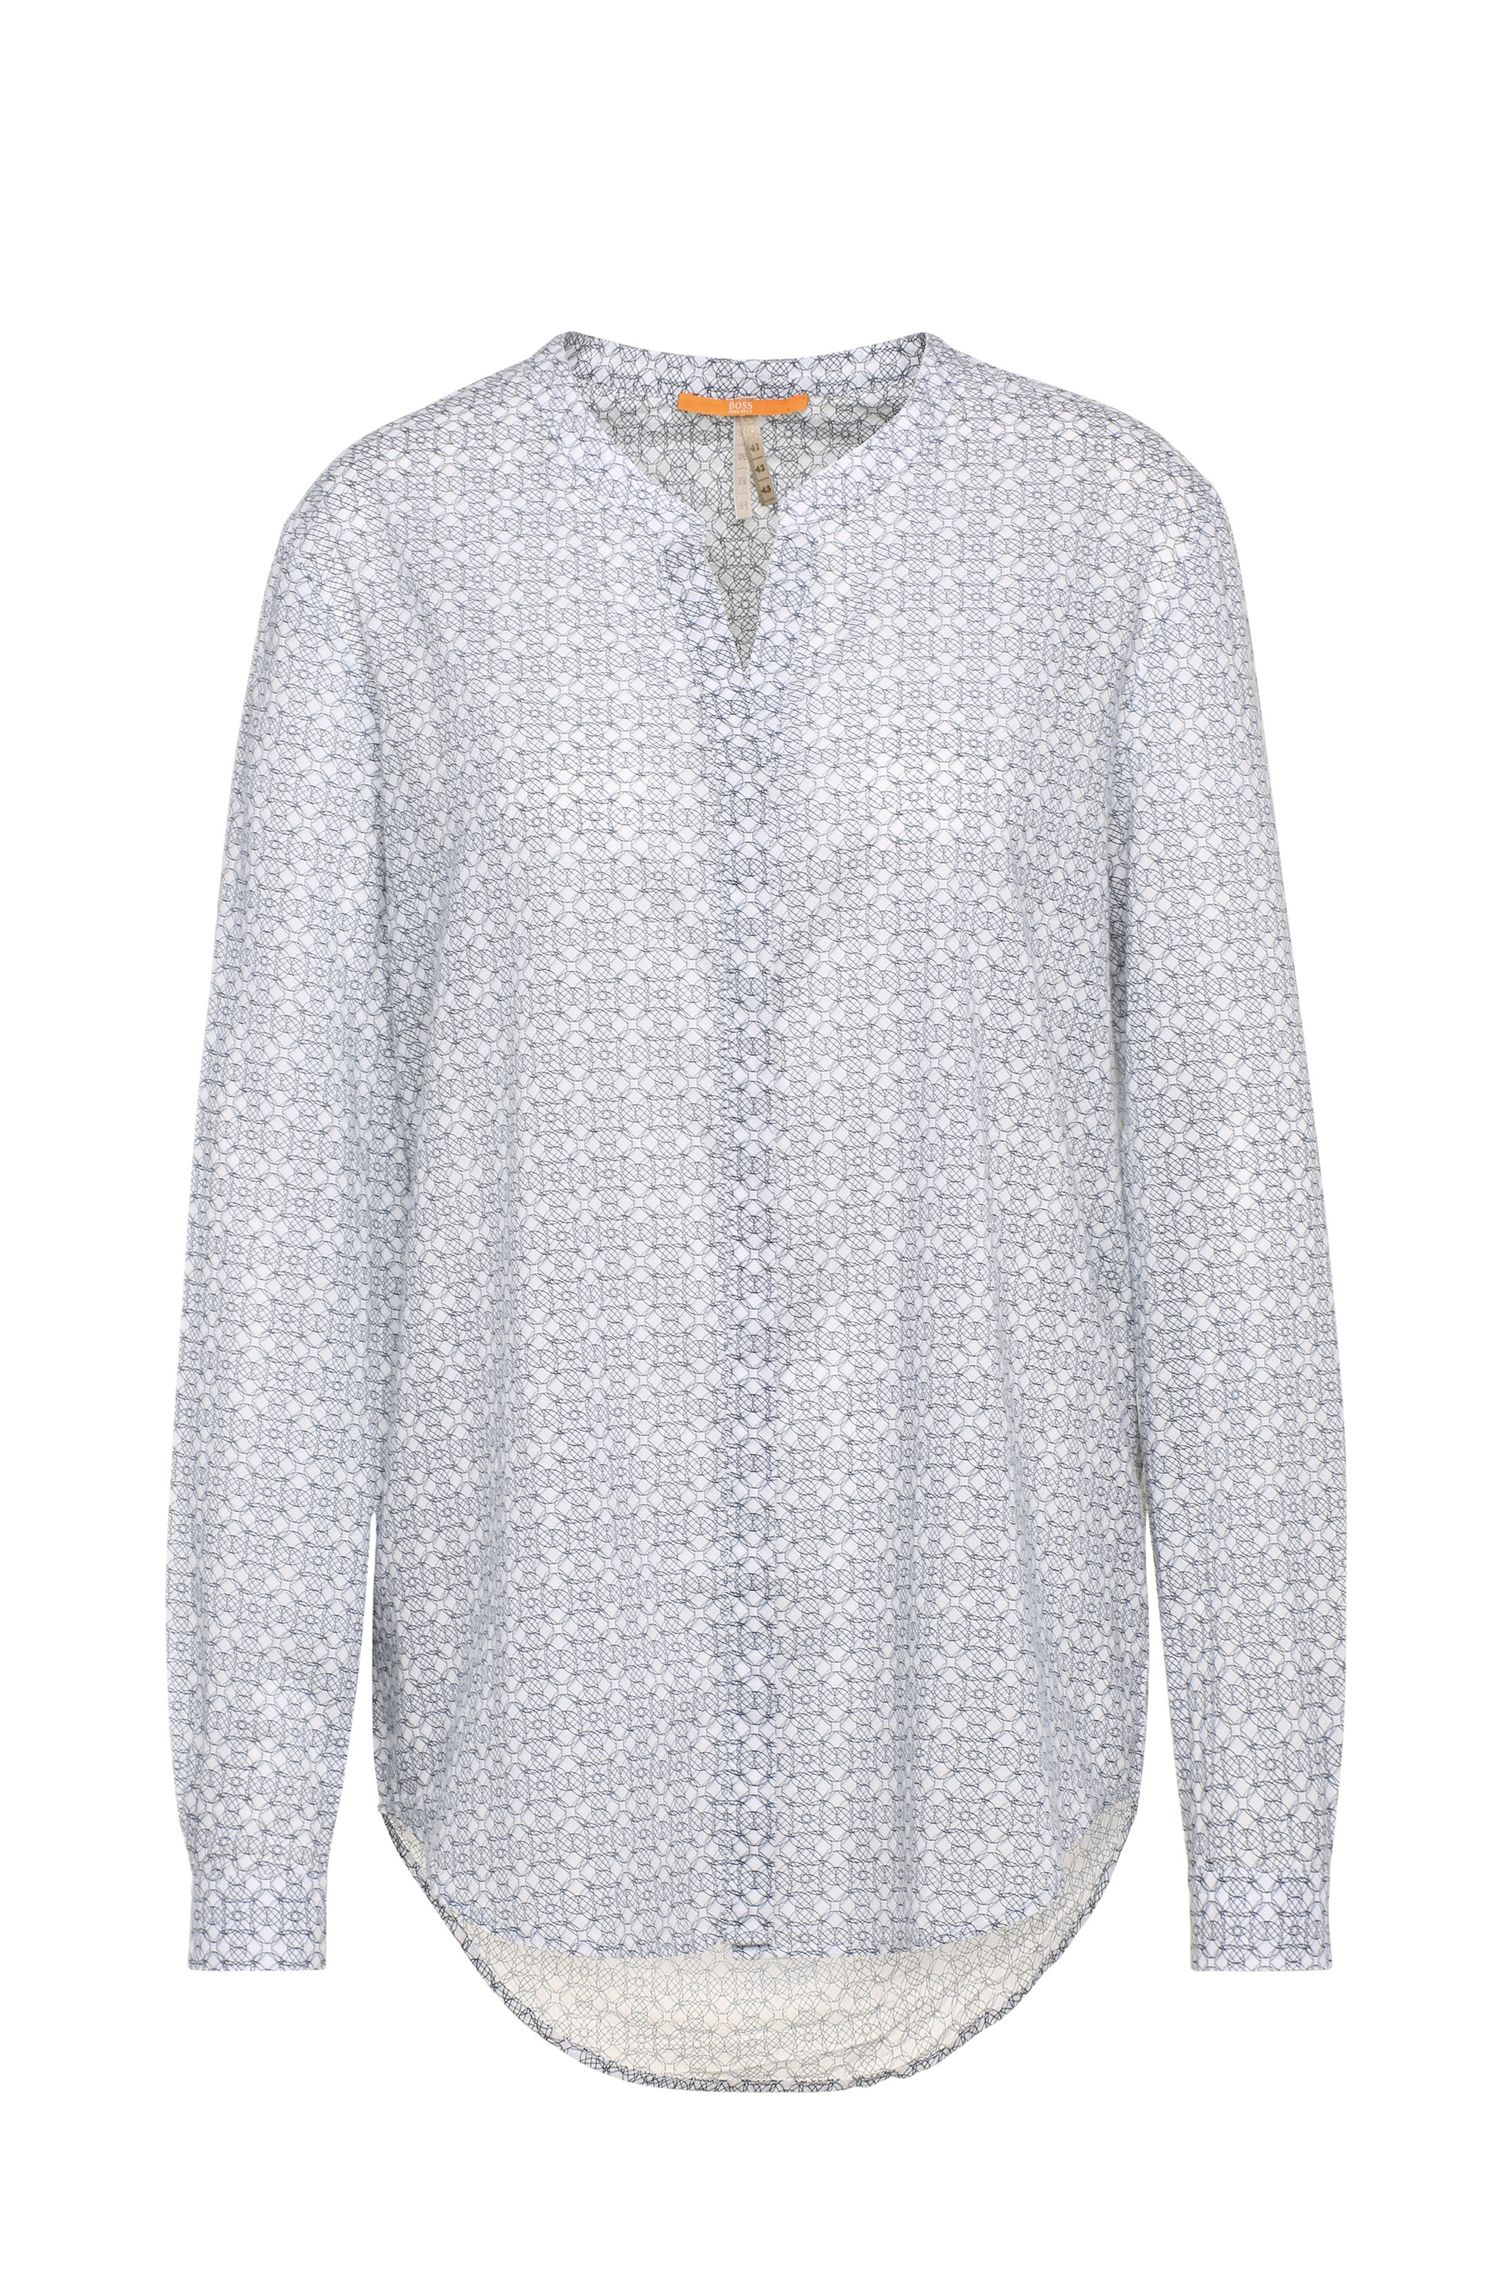 Patterned cotton blouse in tunic style: 'Efelize9'